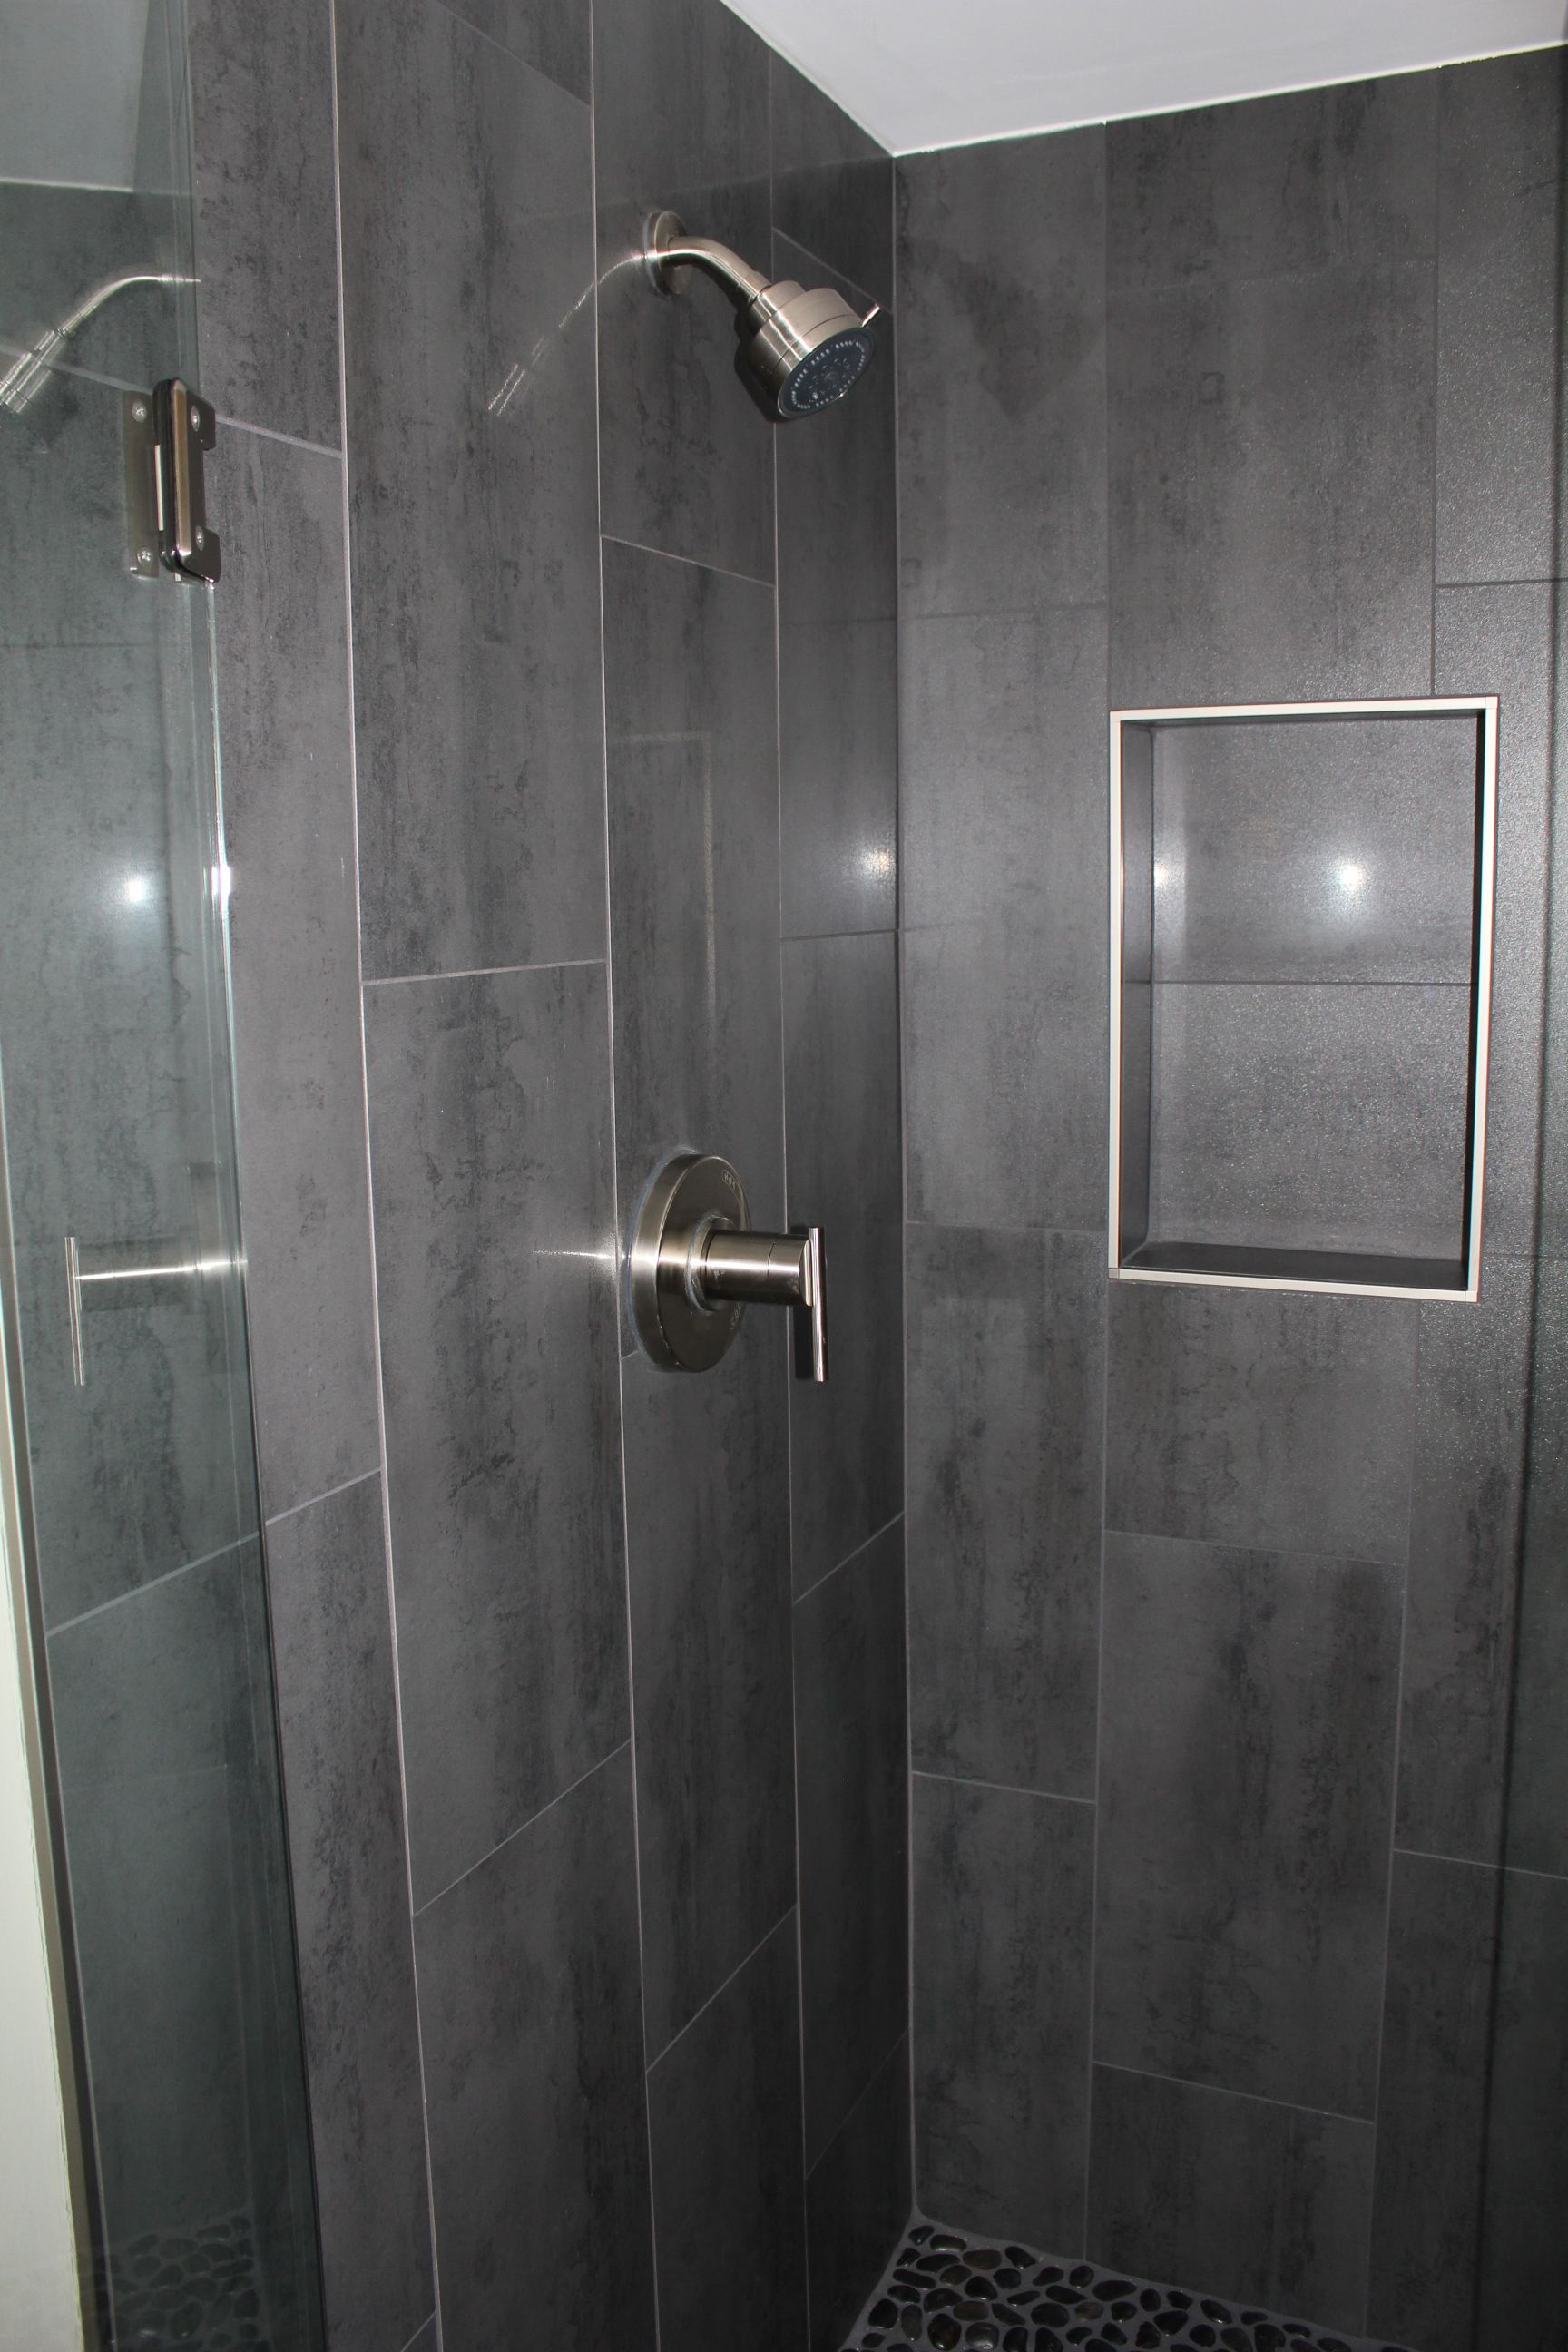 Niche W Out Bullnose Gray 12 X 24 Shower Tile With Danze Shower Faucet Grey Bathroom Tiles Shower Tile Bathroom Wall Tile